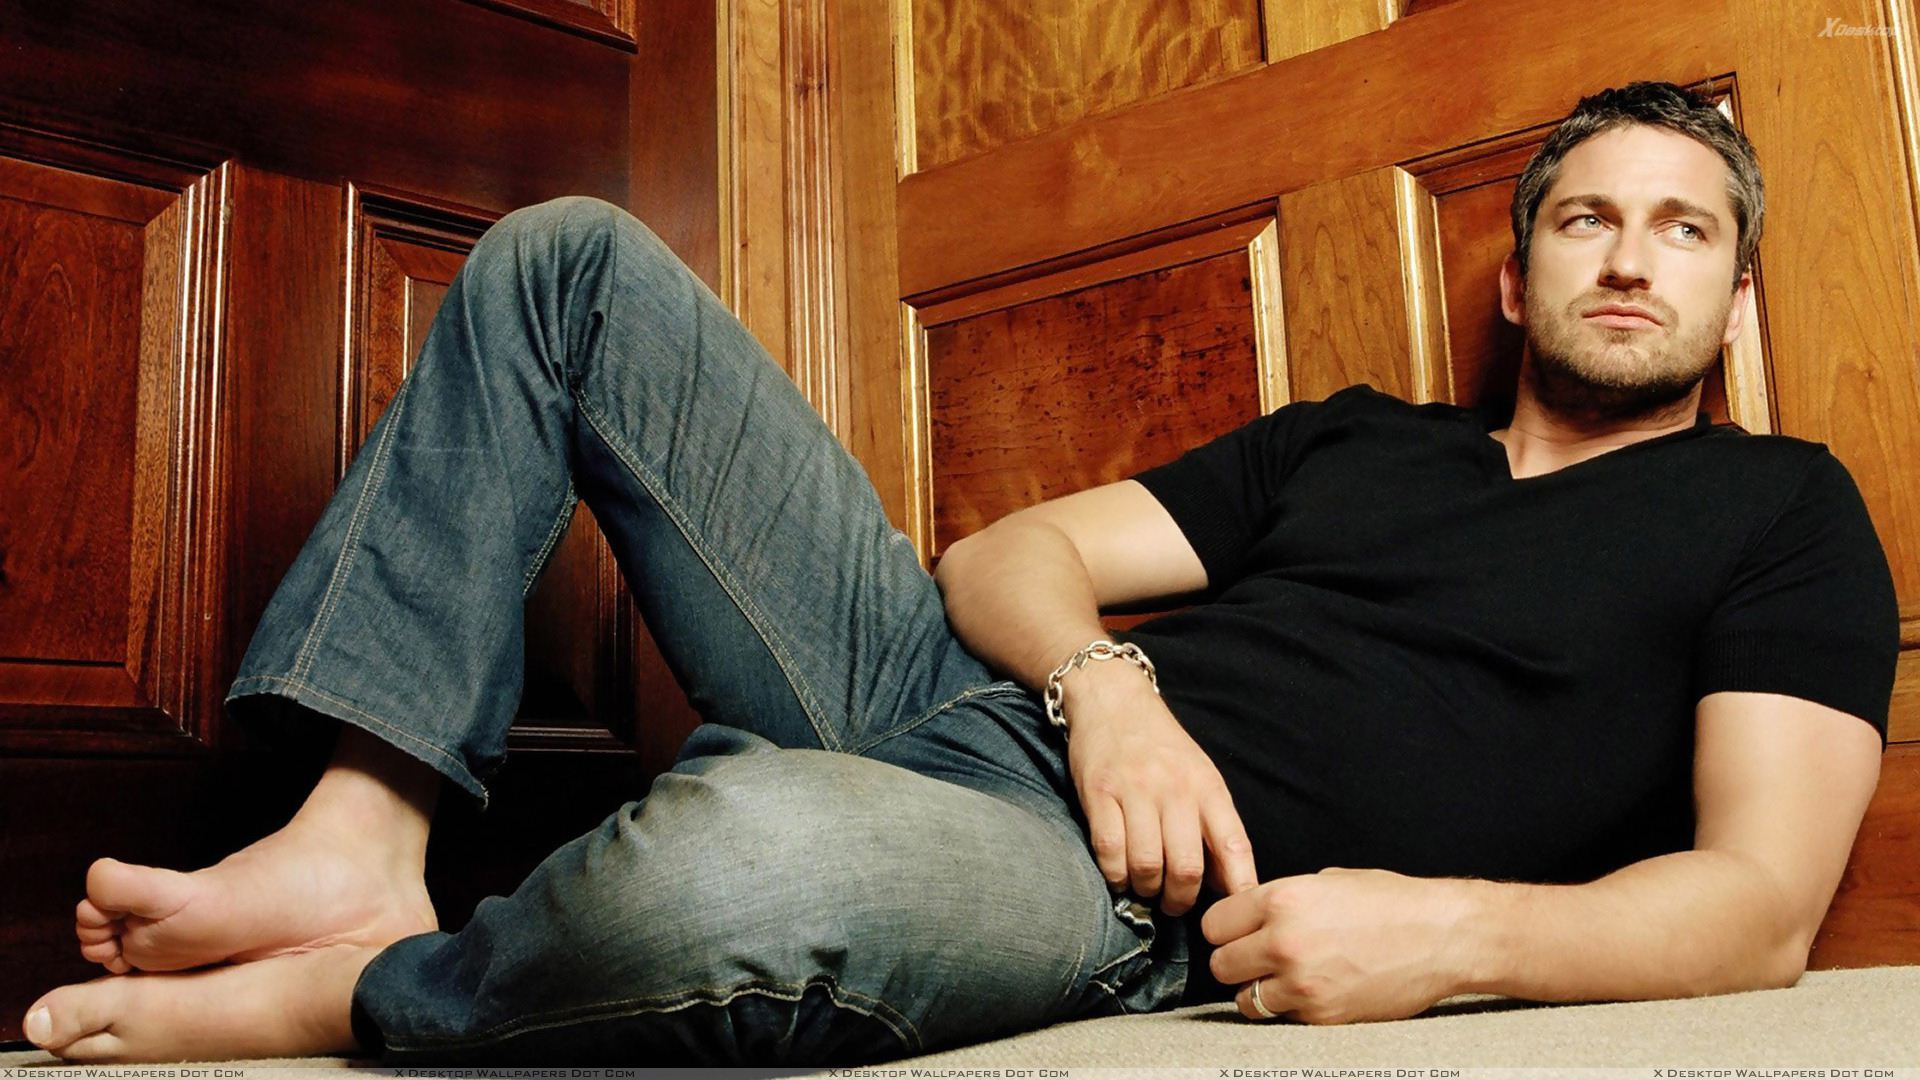 Black t shirt blue jeans - You Are Viewing Wallpaper Titled Gerard Butler In Black T Shirt N Blue Jeans Sitting Pose From The Category